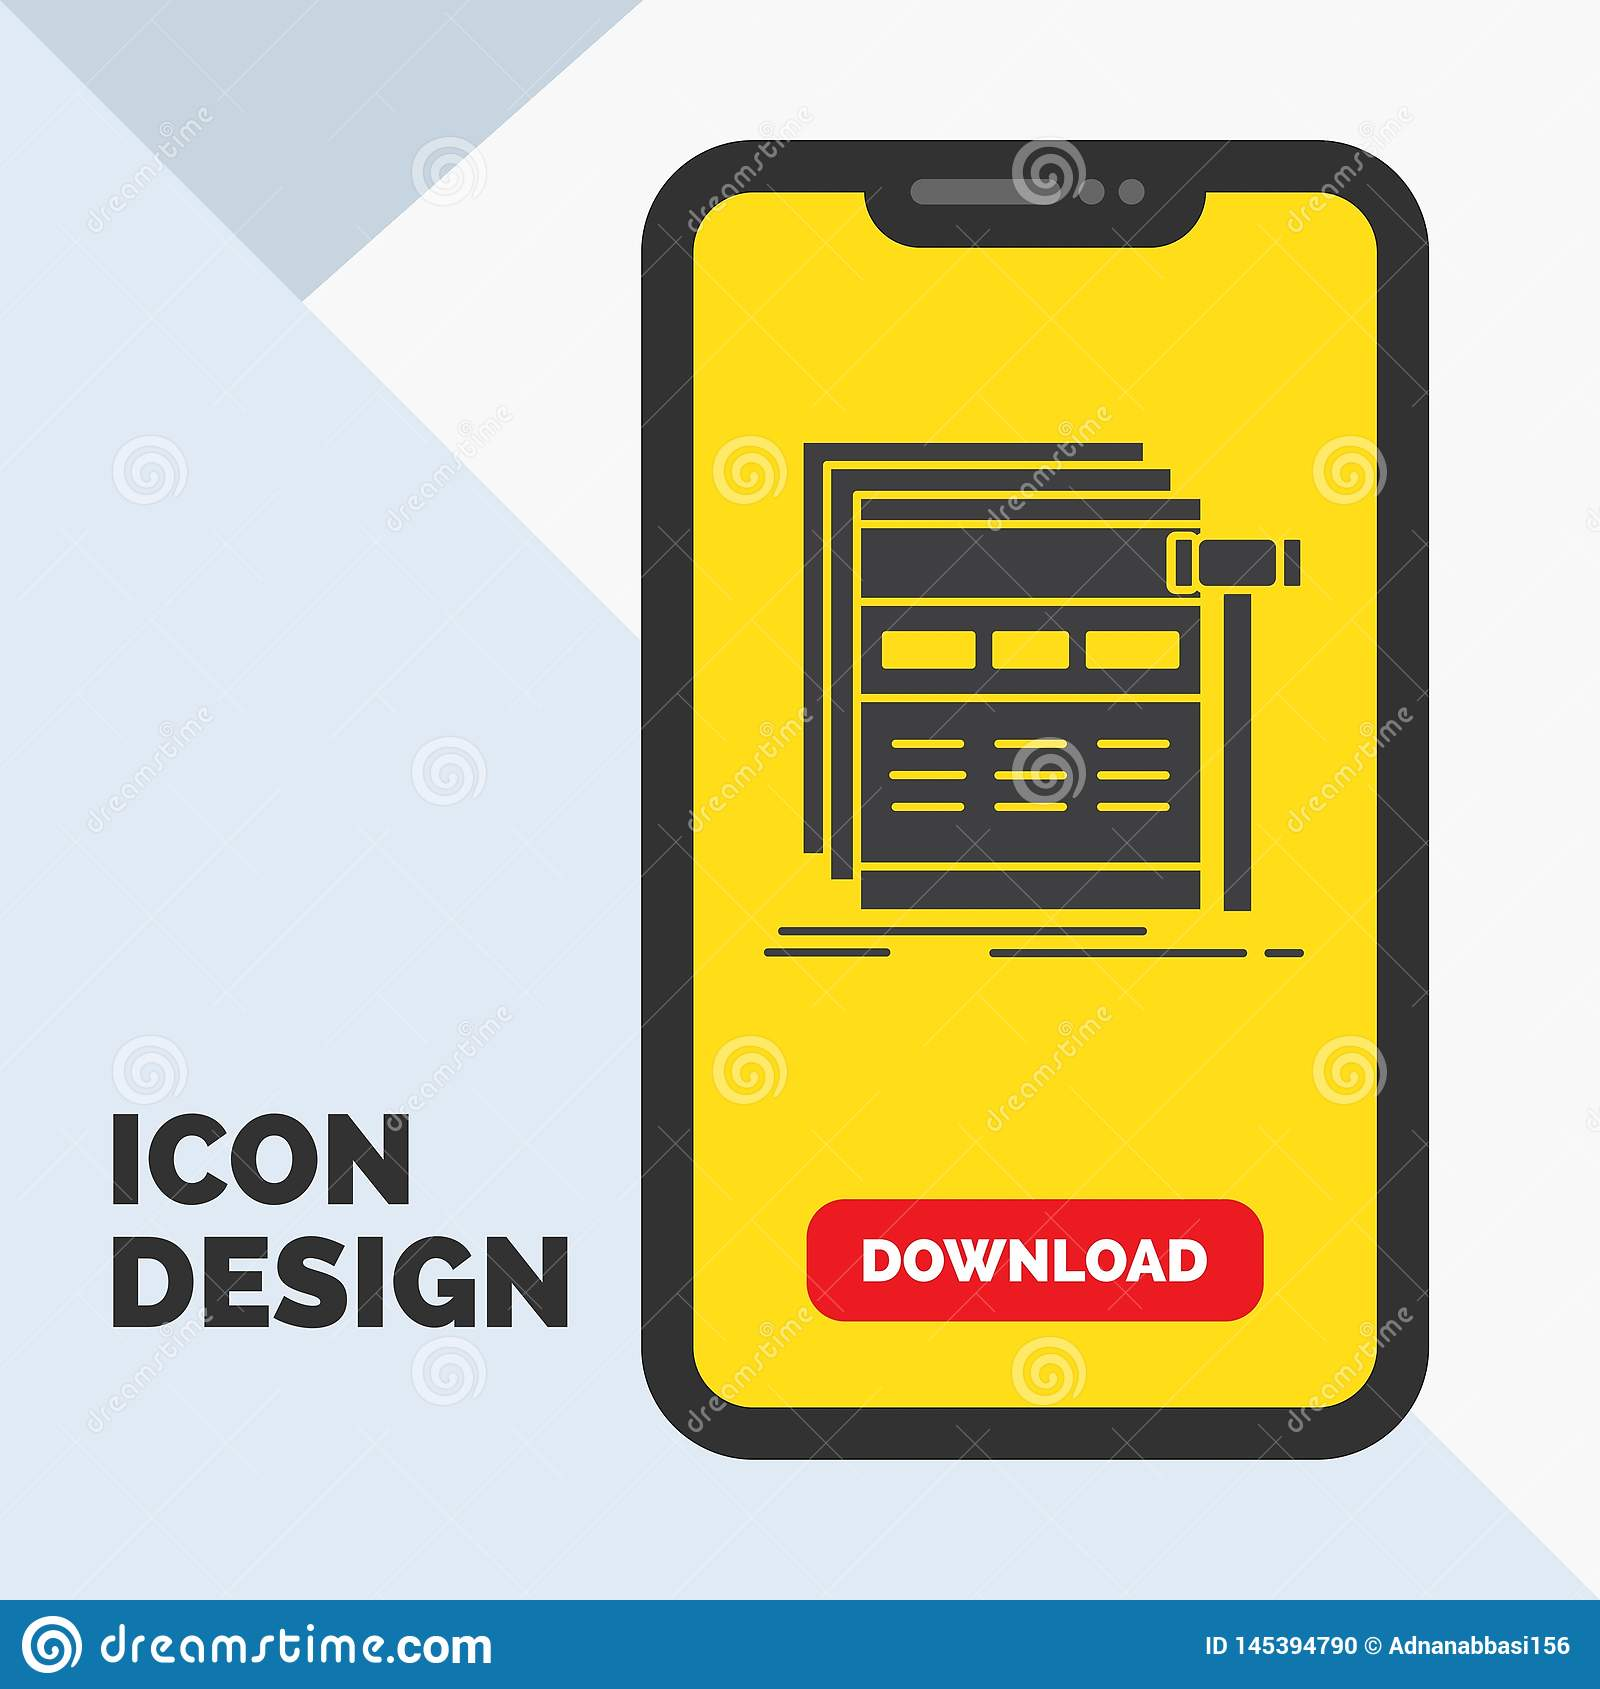 Internet, page, web, webpage, wireframe Glyph Icon in Mobile for Download Page. Yellow Background